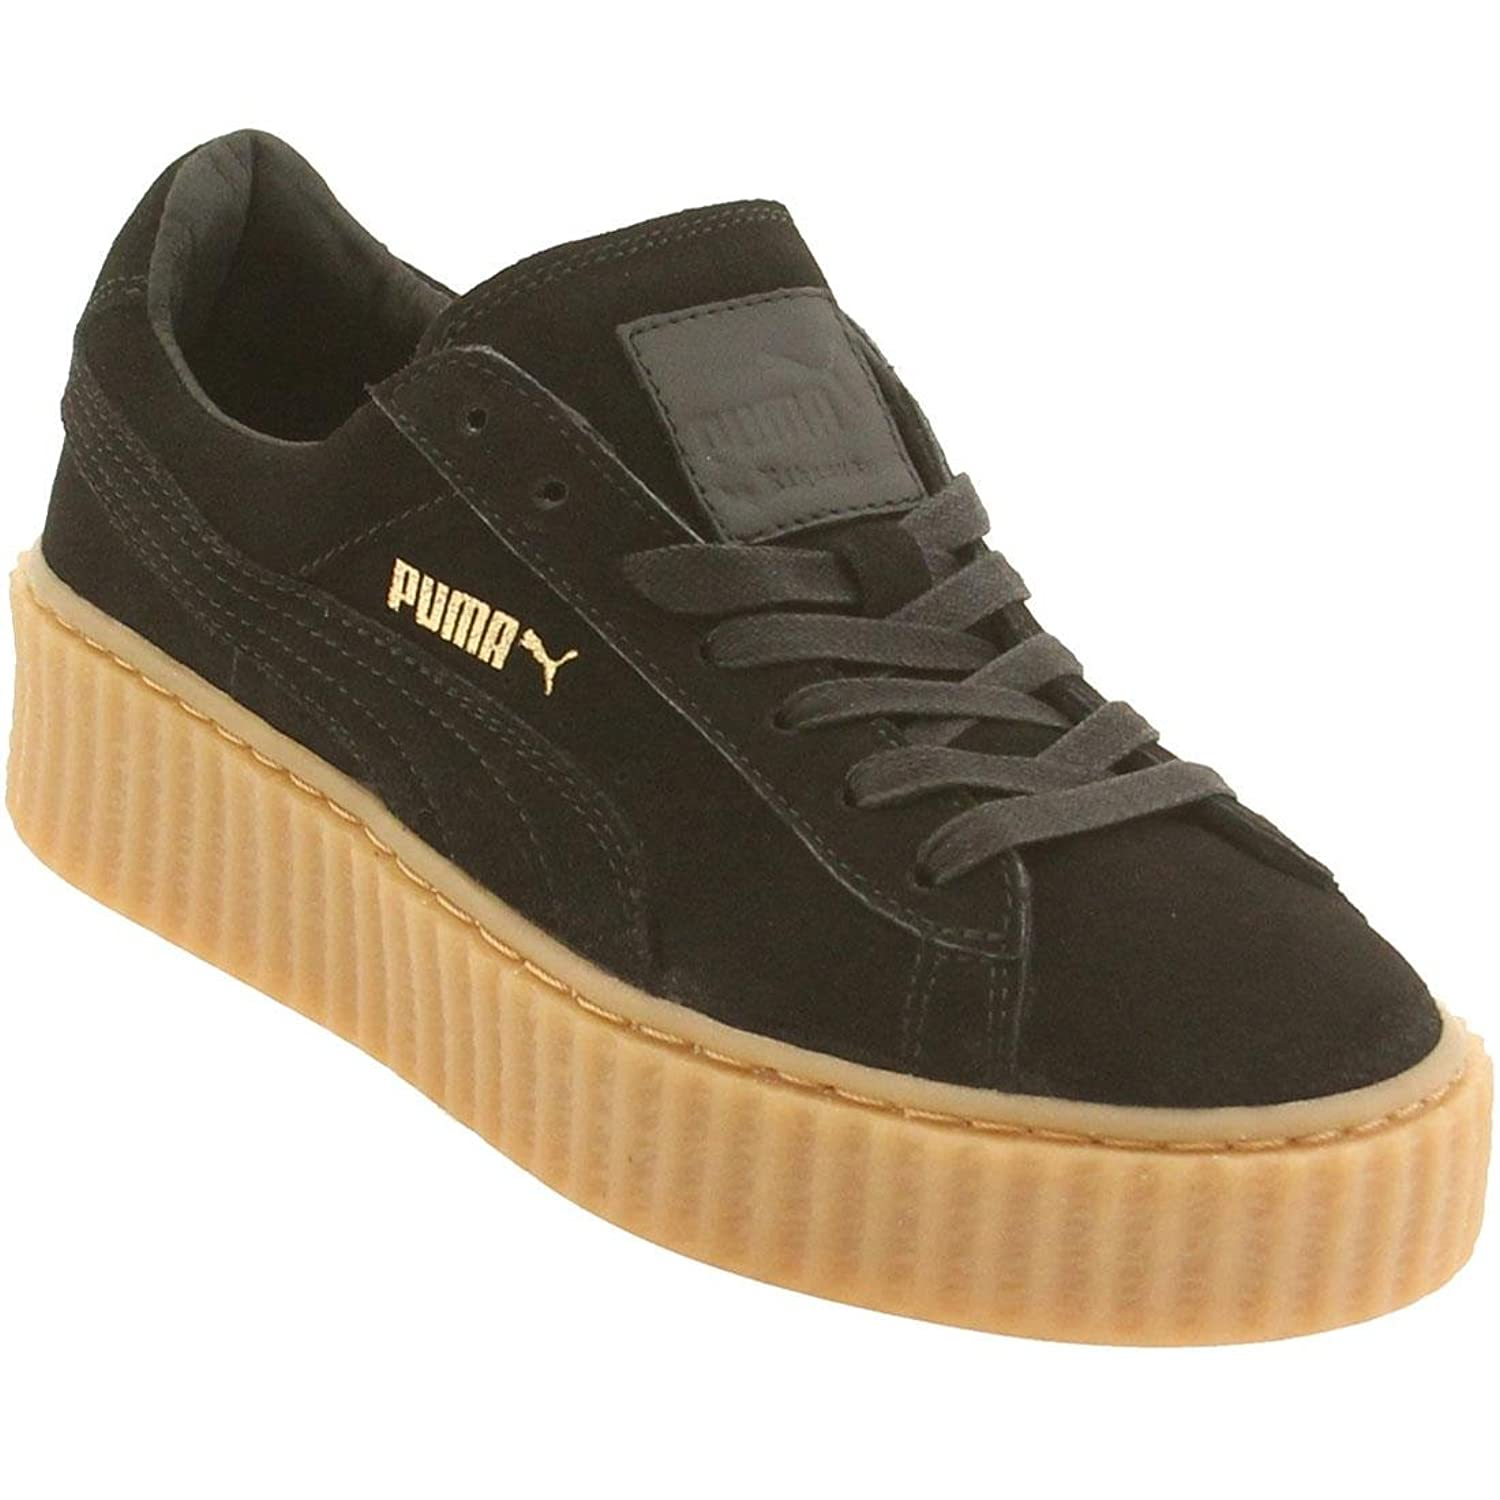 PUMA Womens Fenty by Rihanna Black Suede Creepers 36100502 Sneakers Shoes 8.5 yi19a